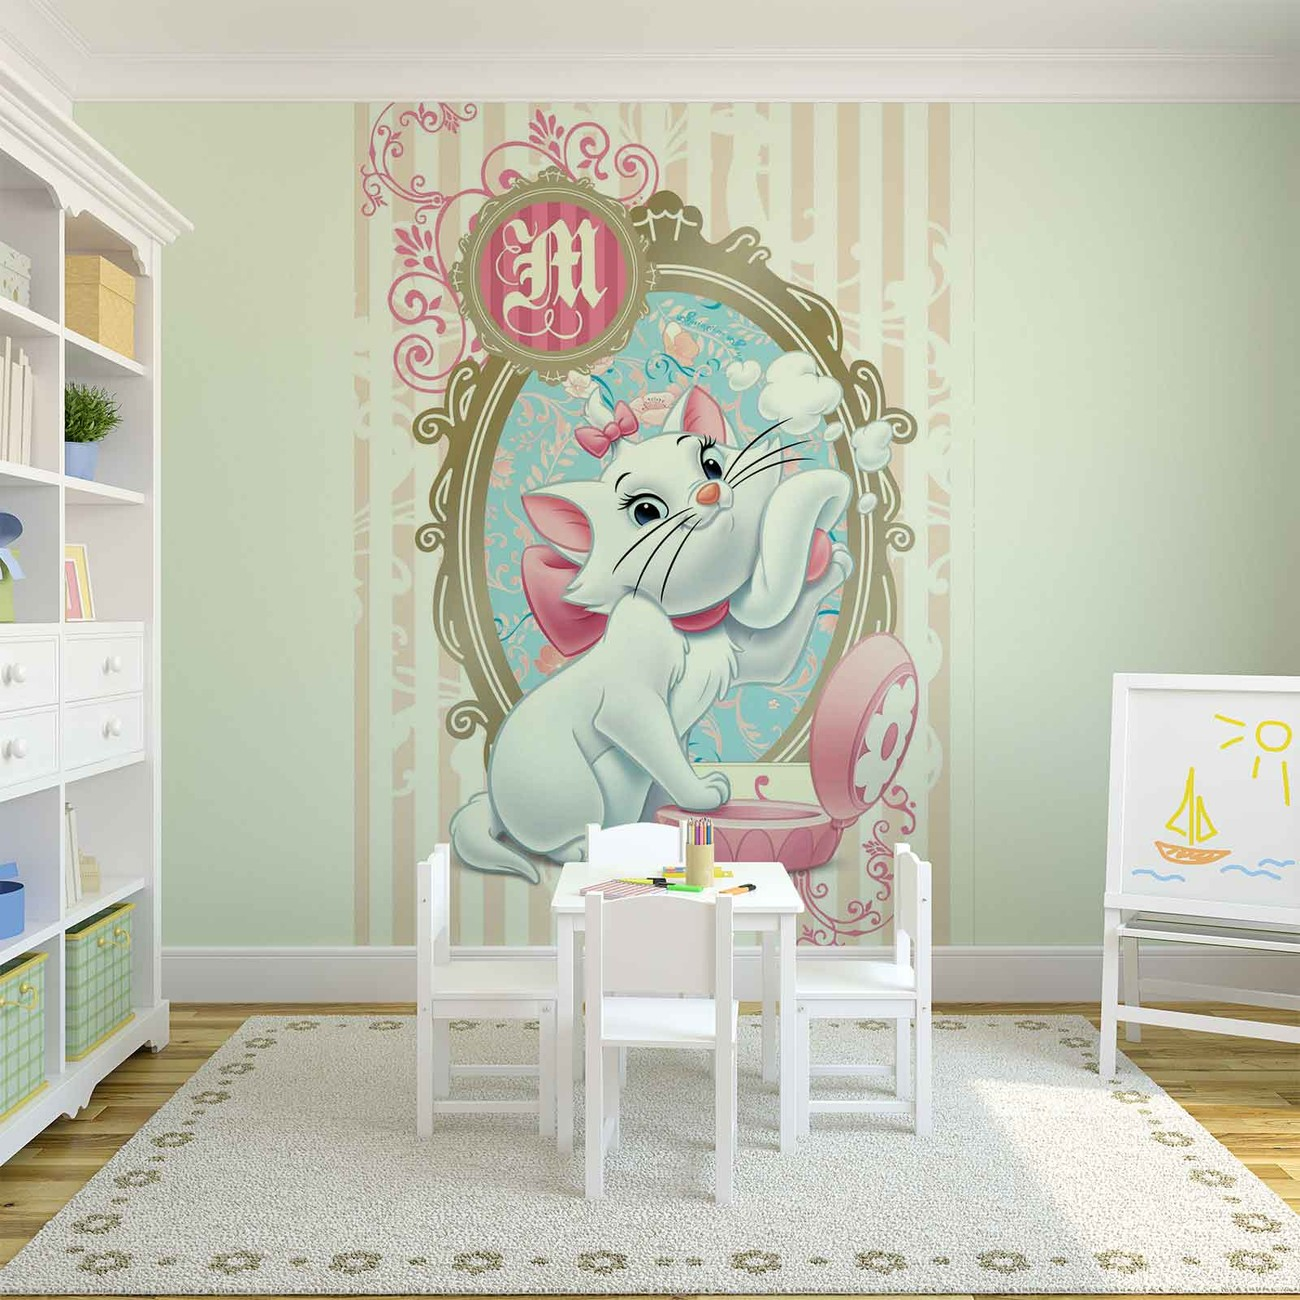 Disney aristocats marie wall paper mural buy at europosters for Disney wall mural